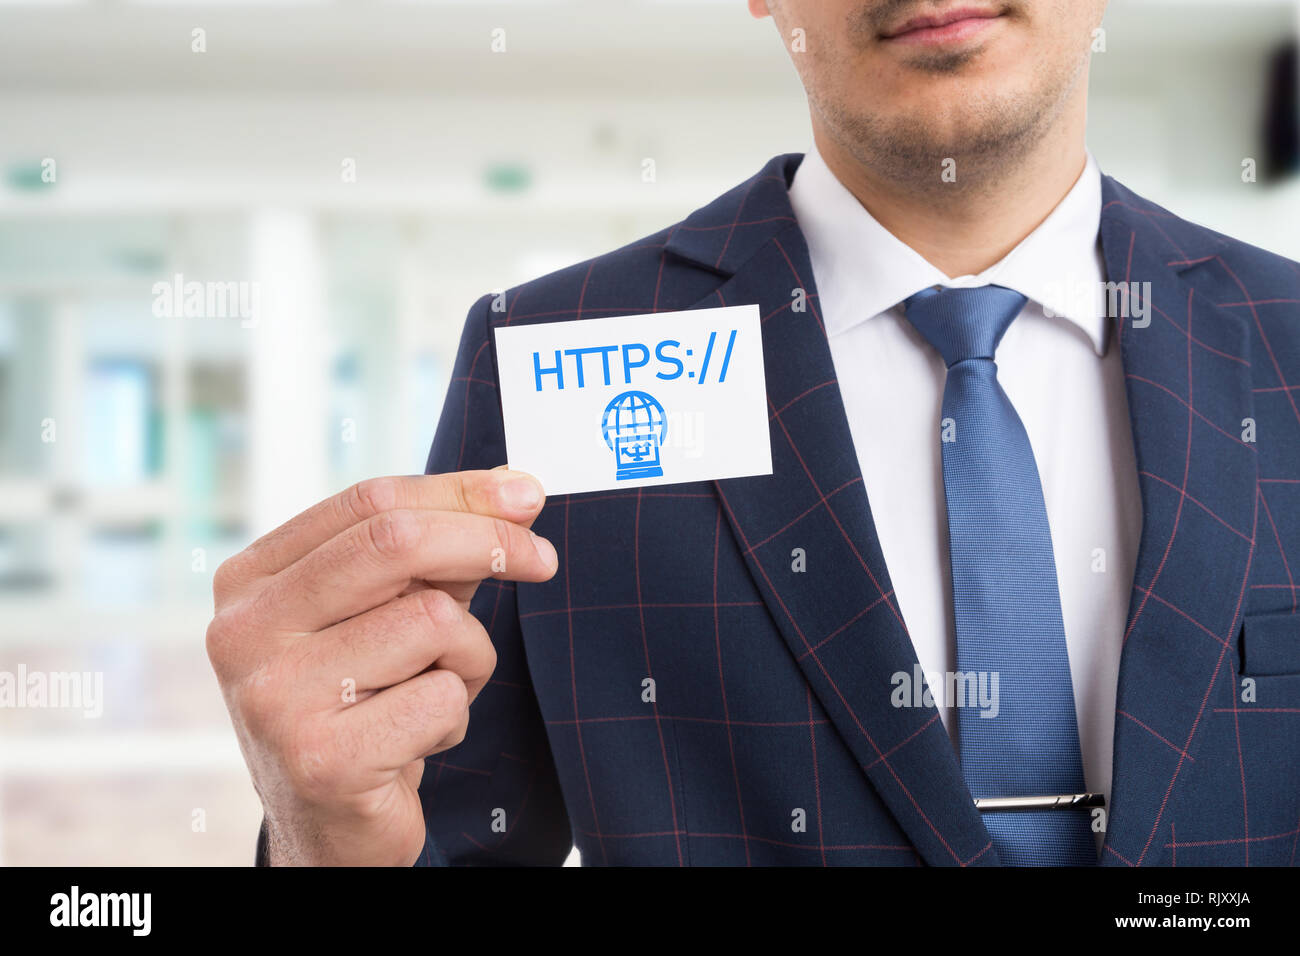 Businessman holding white card with hands as presenting website by showing https letters and computer connection symbol - Stock Image